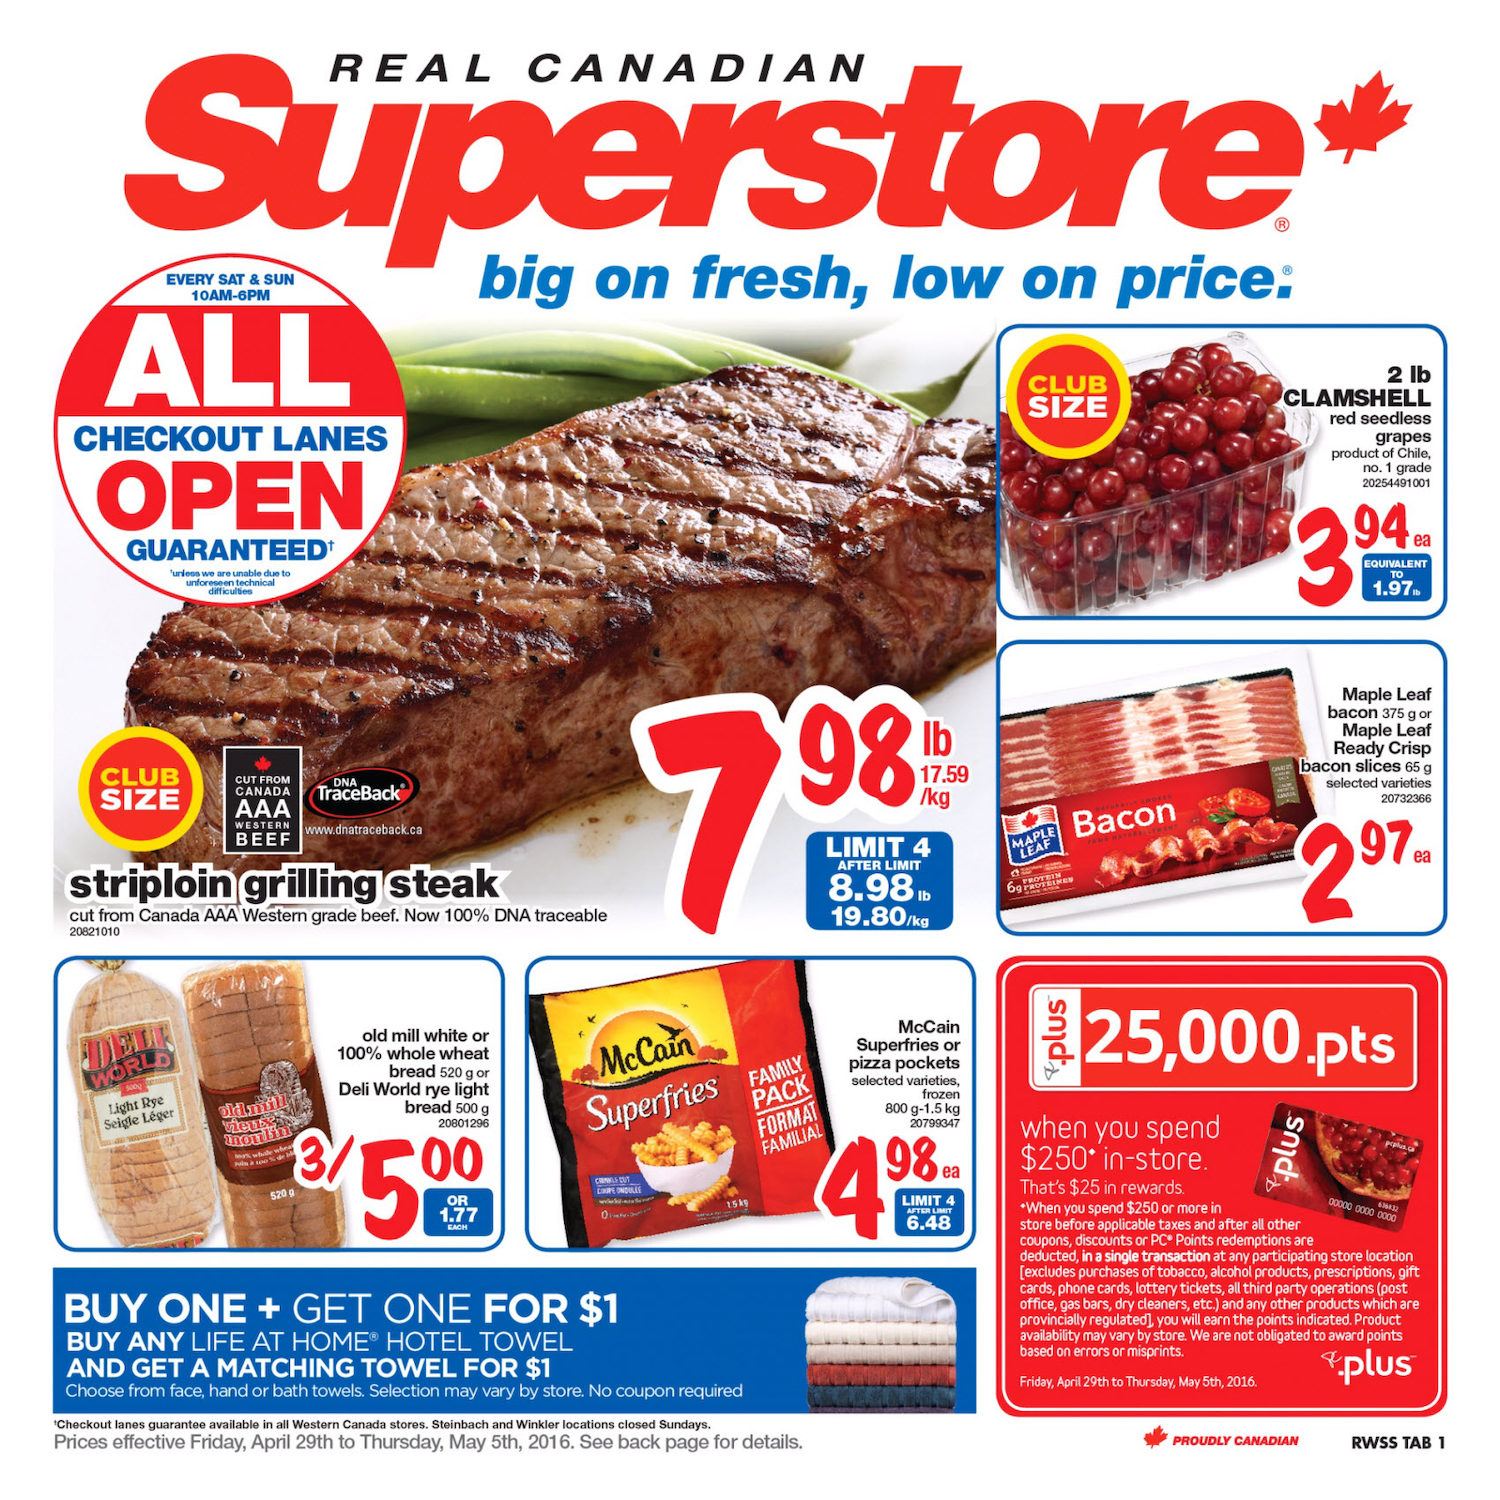 Real Canadian Superstore Price Match Policy